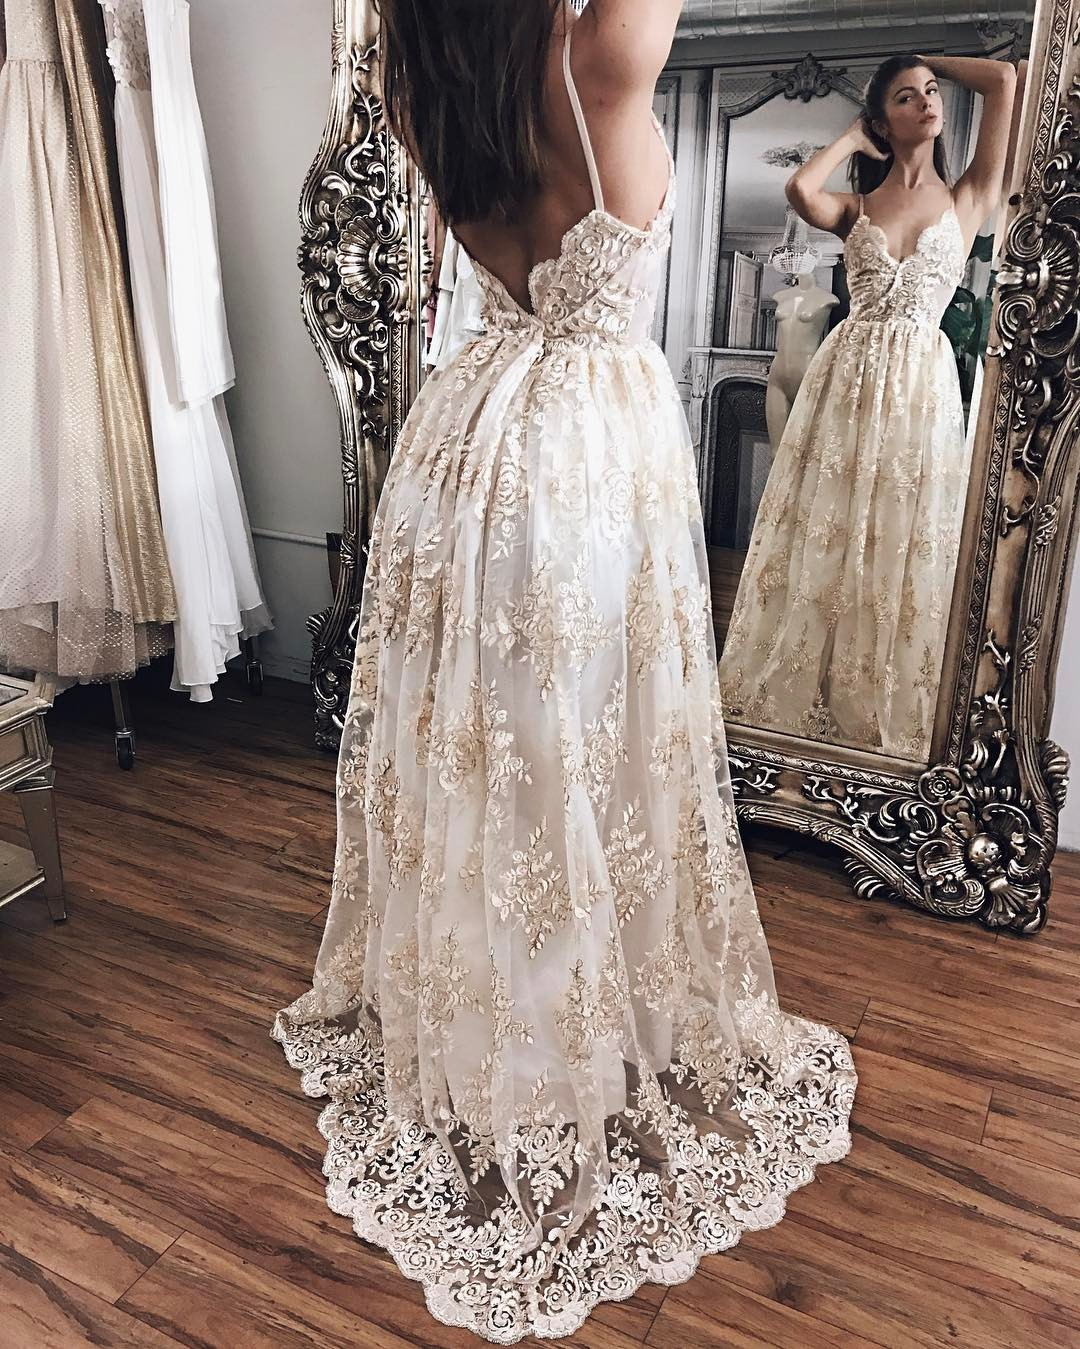 6a97c5d598 Beach Wedding Dress Ivory Outdoor Countryside Boho Beach Wedding Dress with Champagne  Appliques on Storenvy